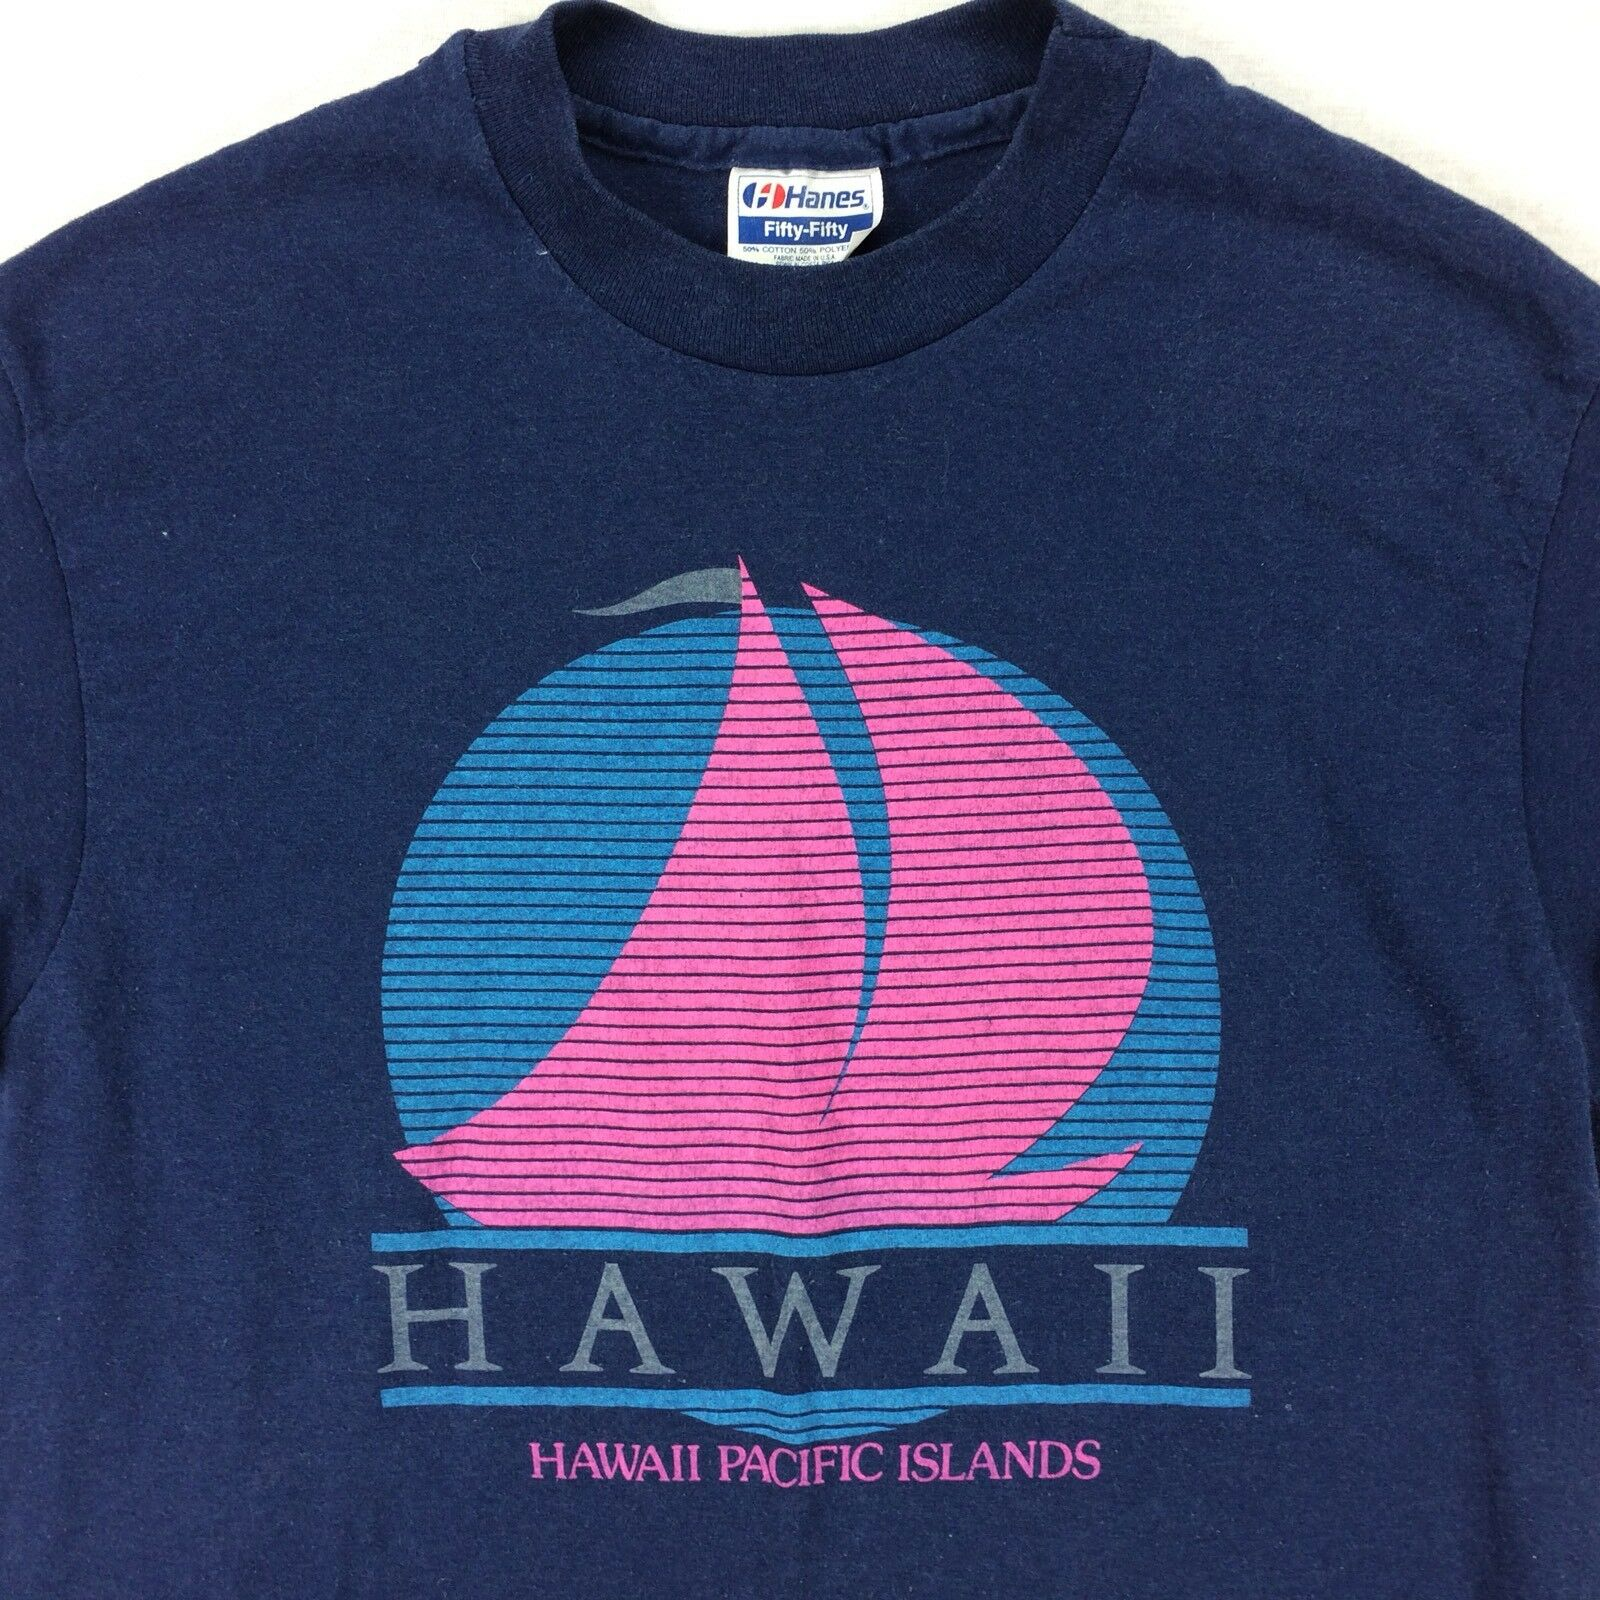 Vintage Hawaii Pacific Island Surfer T-Shirt Sz Medium M bluee Sailboat Vaporwave